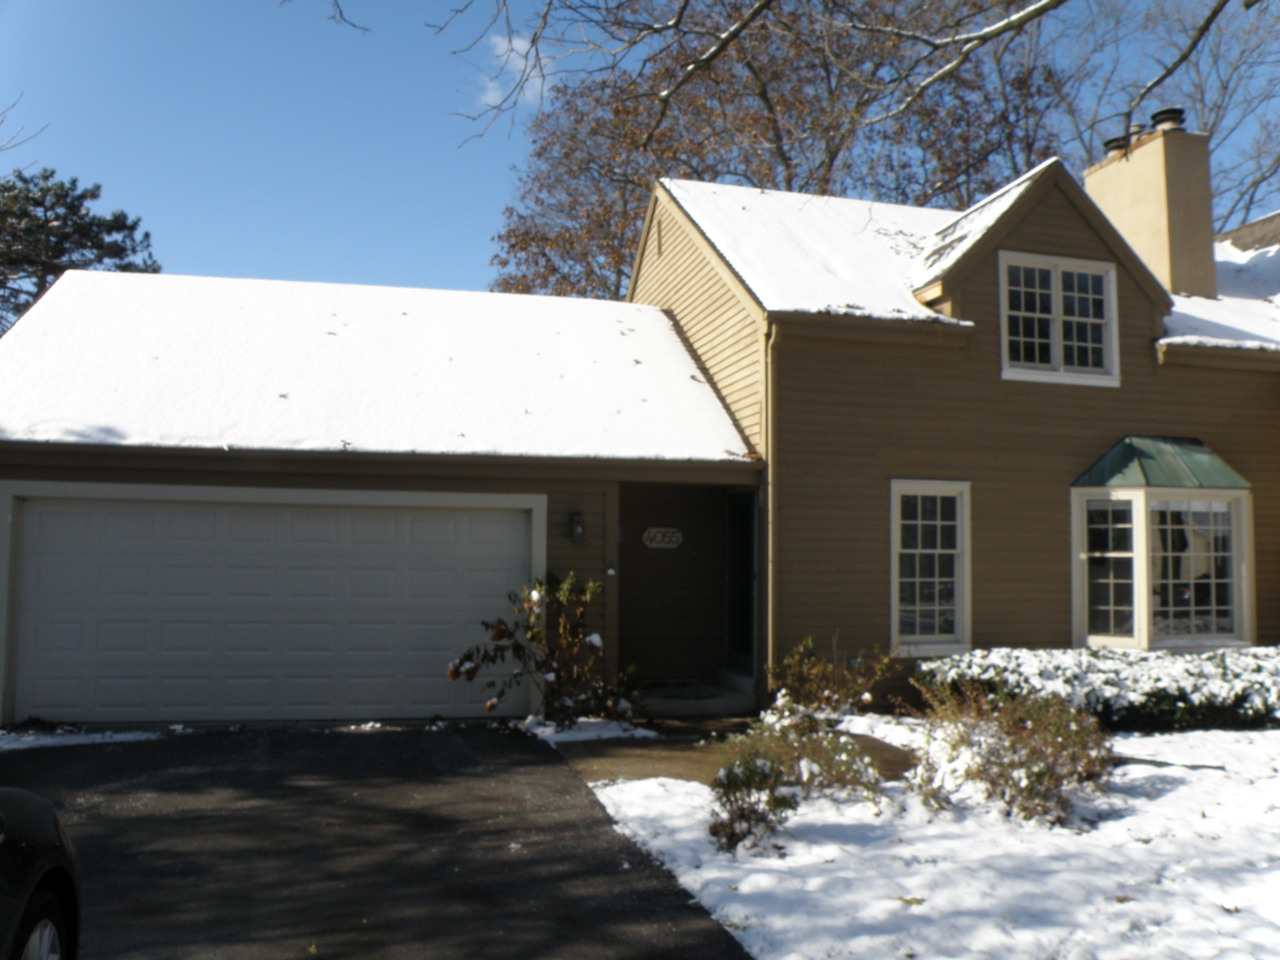 4055 Stonewood Ct, Brookfield, Wisconsin 53045, 2 Bedrooms Bedrooms, 7 Rooms Rooms,2 BathroomsBathrooms,Condominiums,For Sale,Stonewood Ct,1,1653044